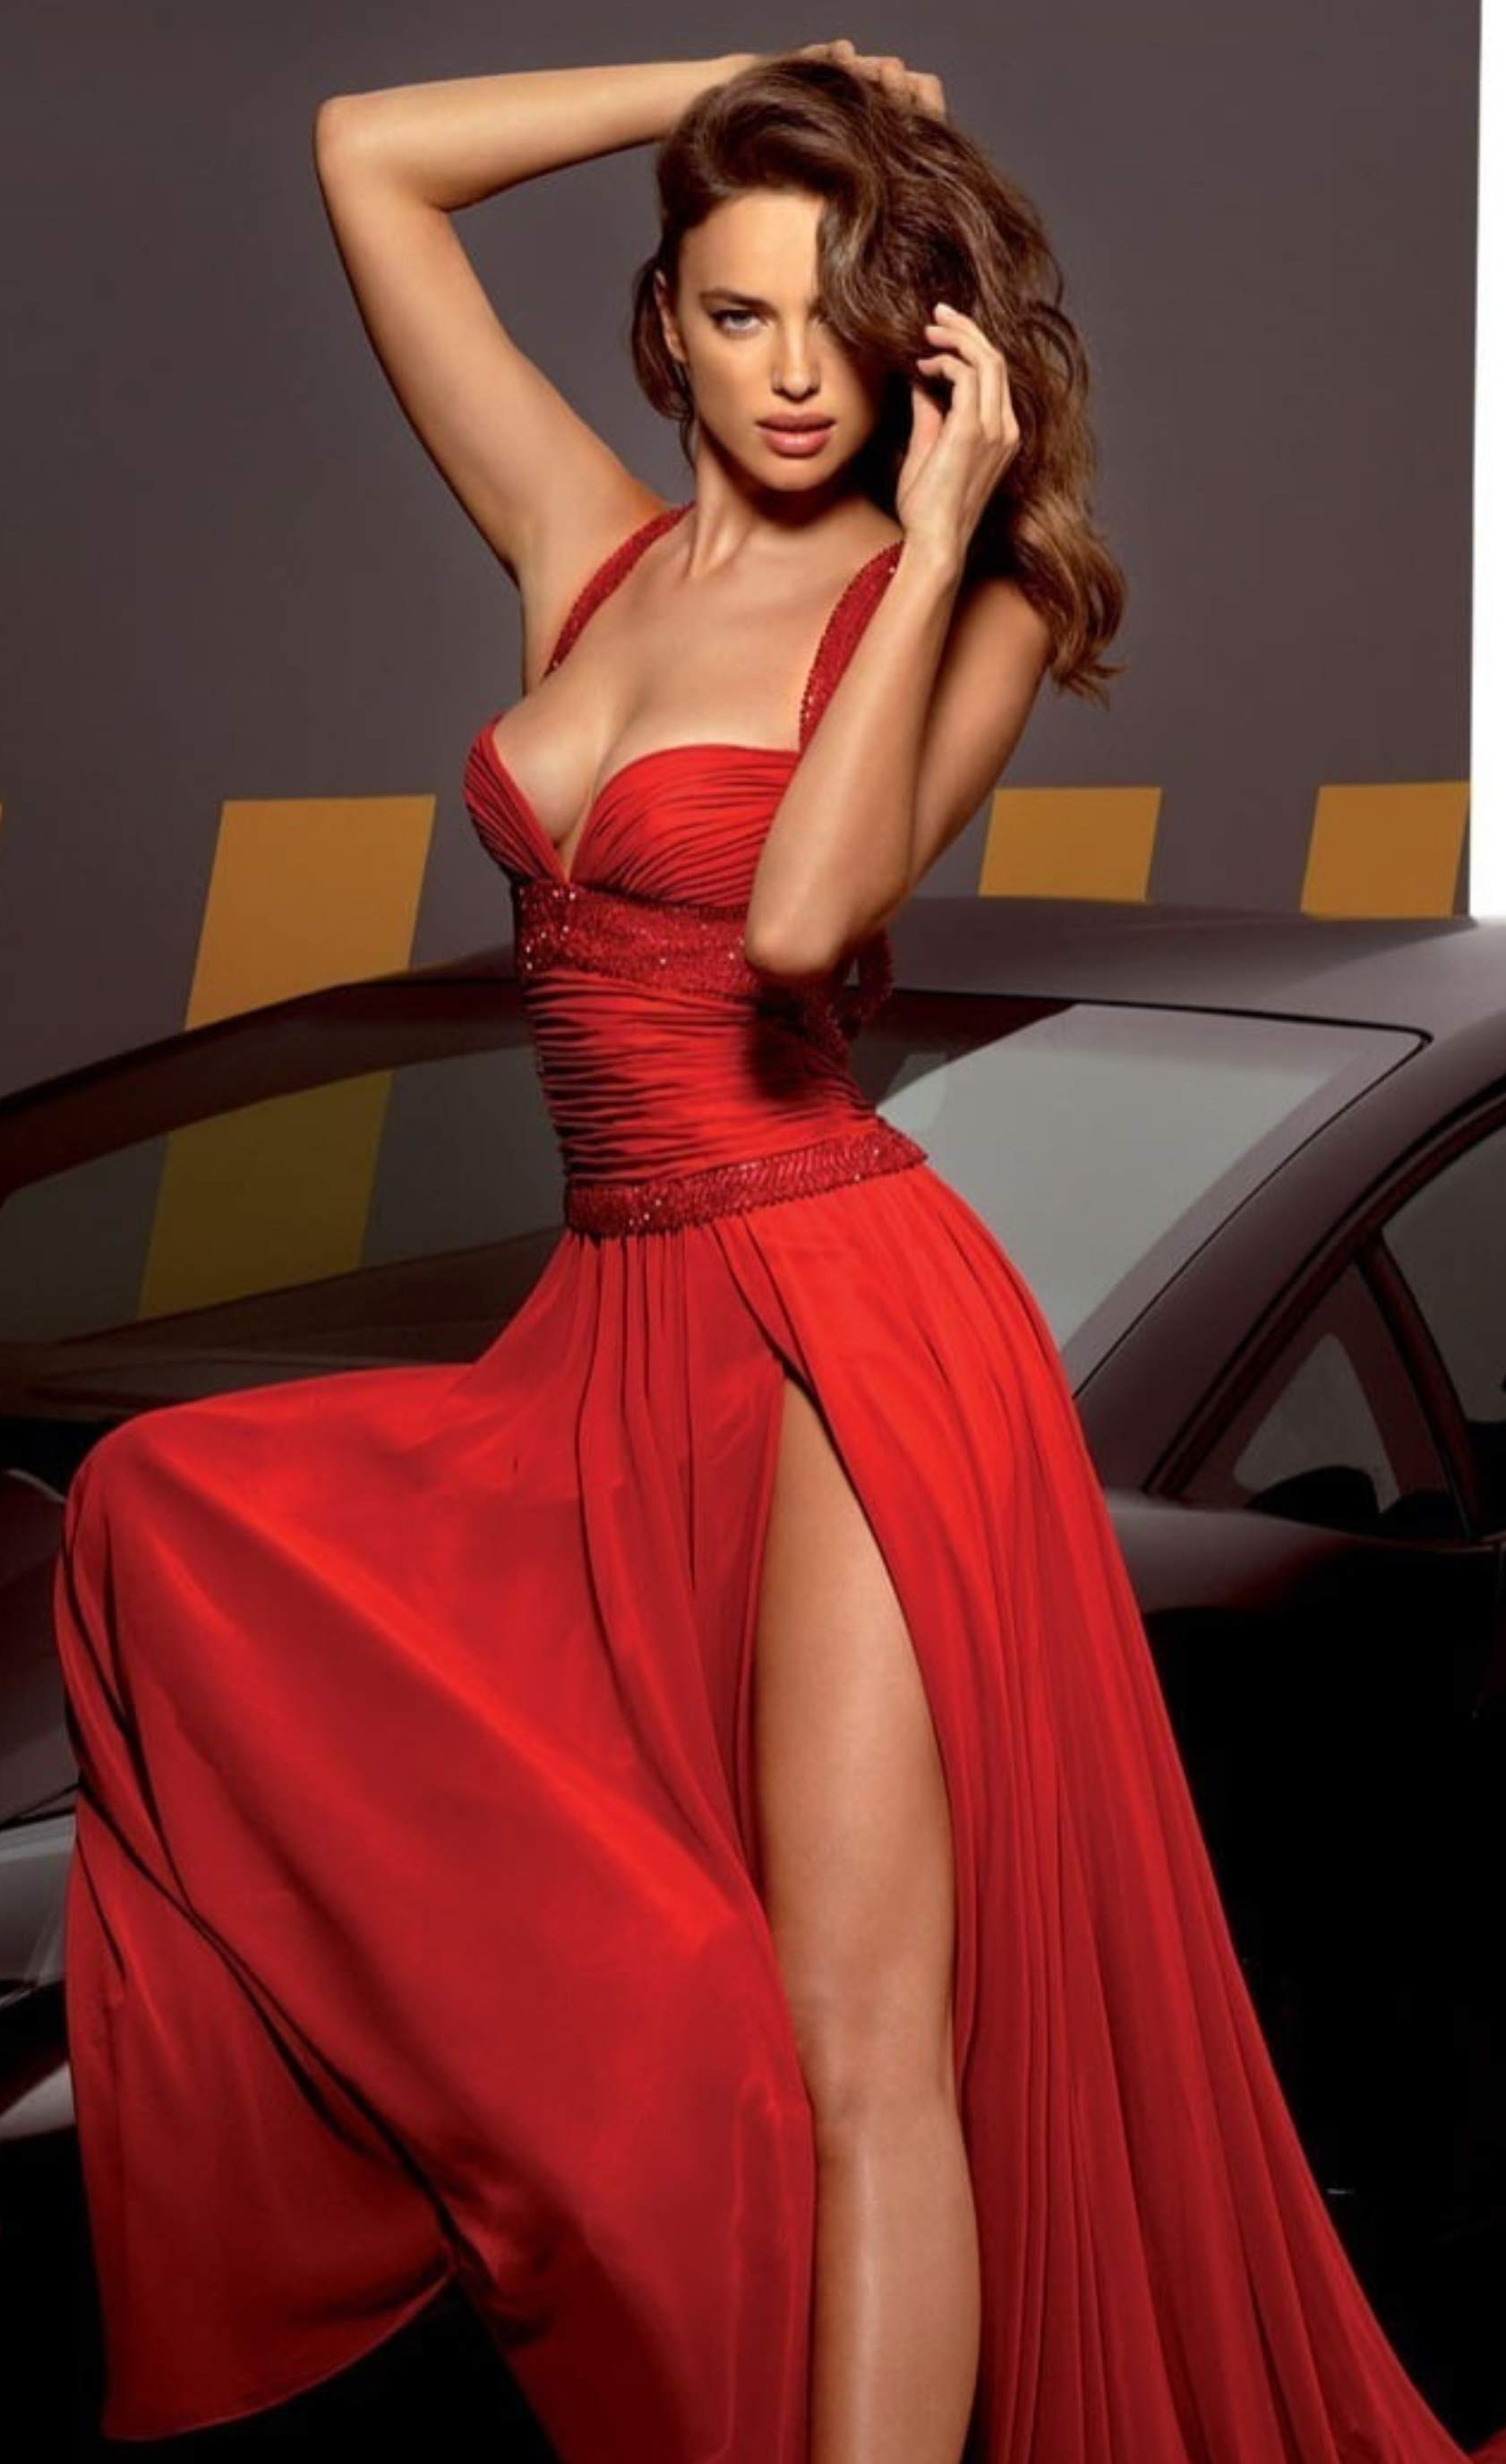 Norwood Escorts